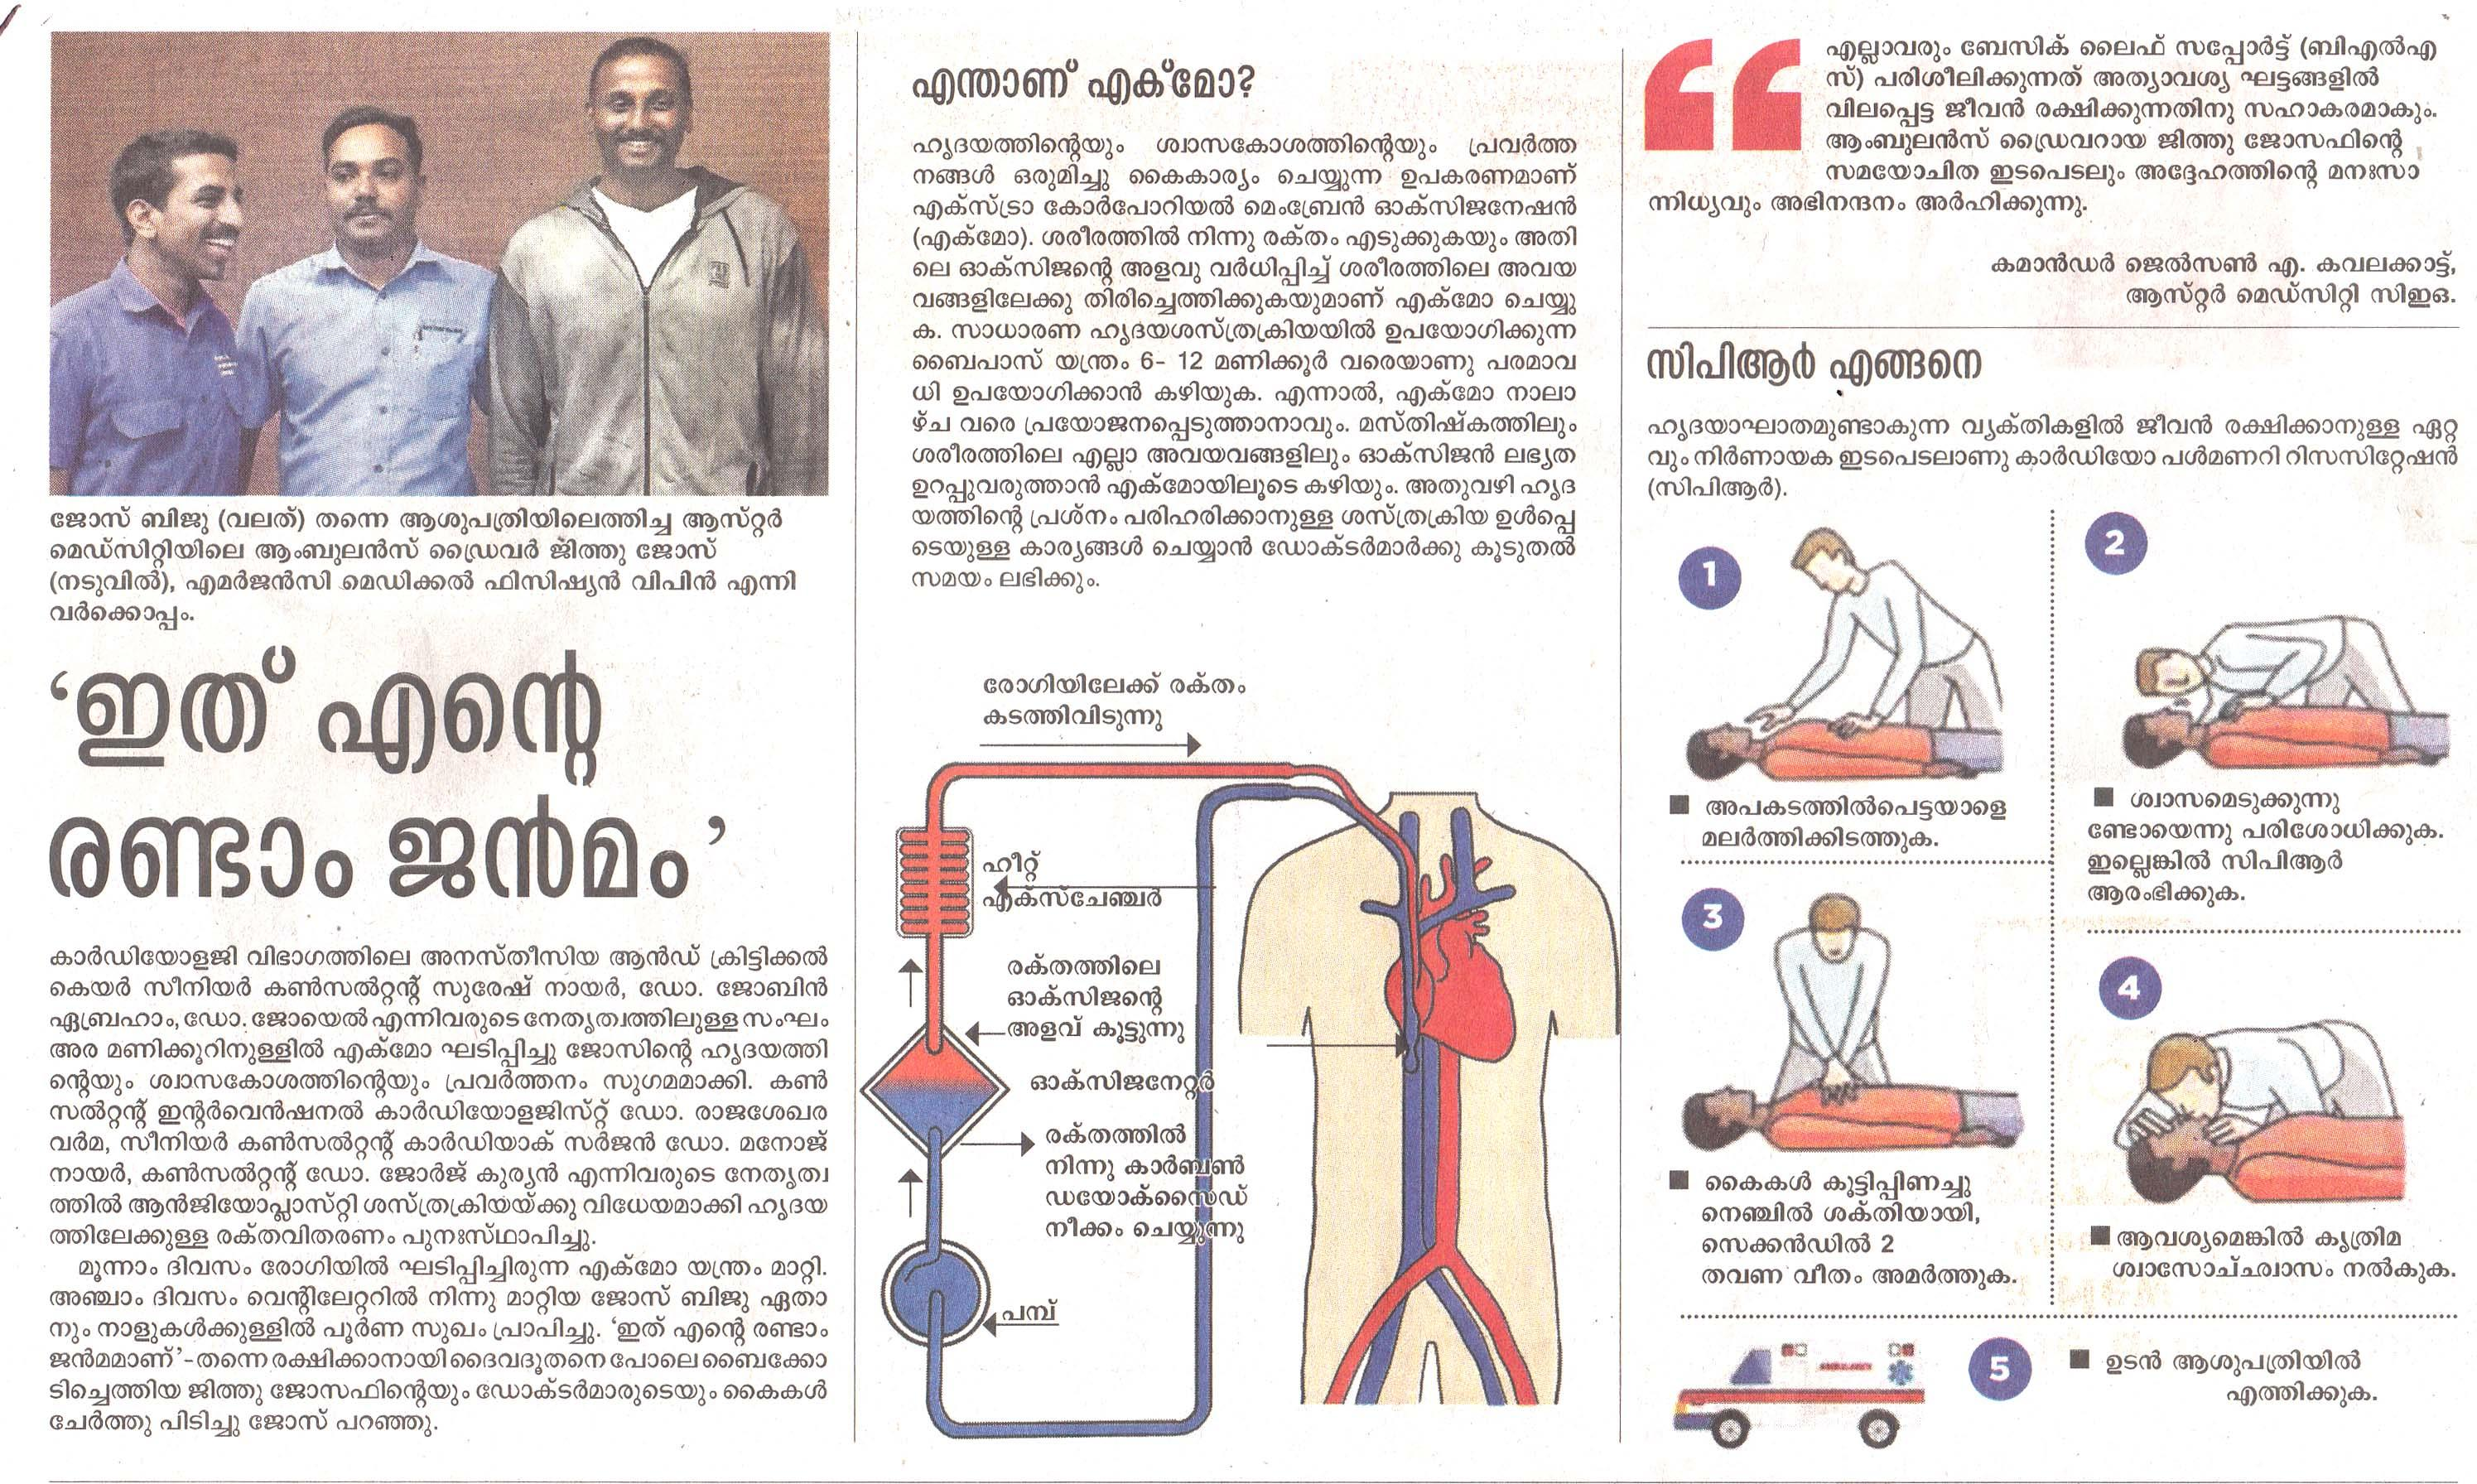 23 11 2019 Malayala Manorama Pg 04 Metro Manorama